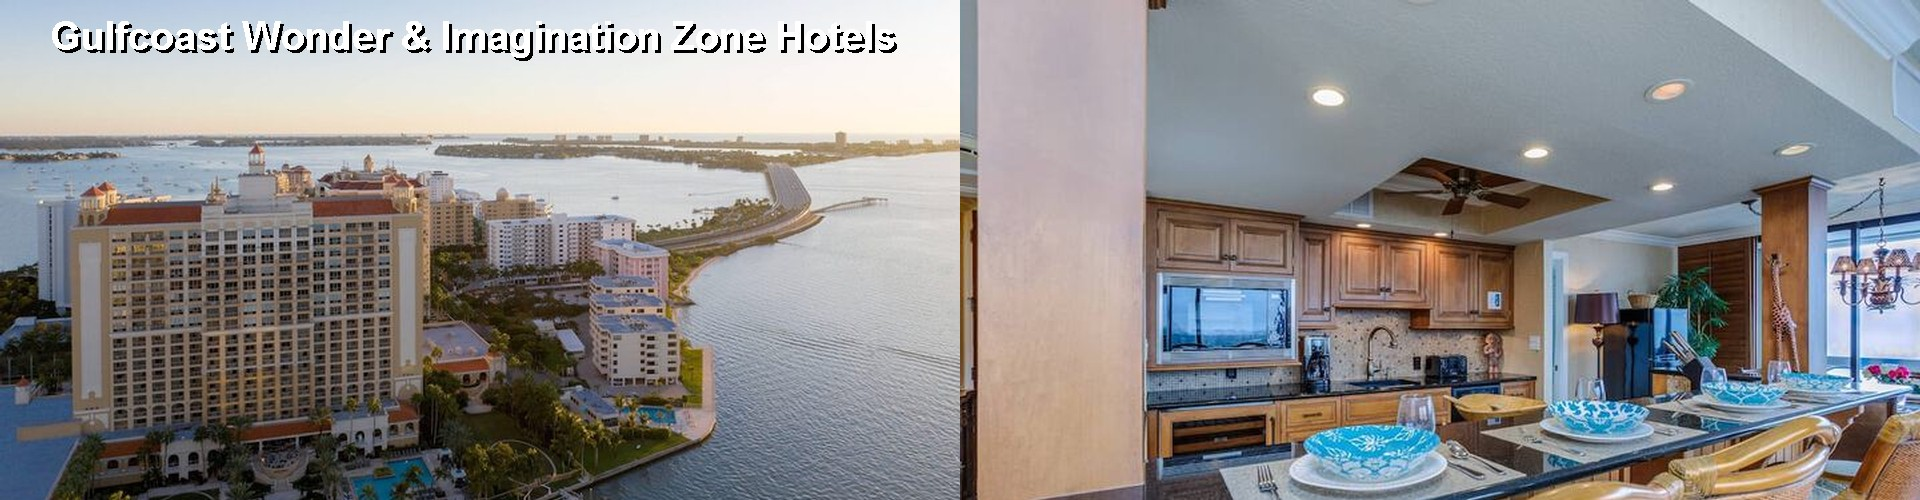 5 Best Hotels near Gulfcoast Wonder & Imagination Zone